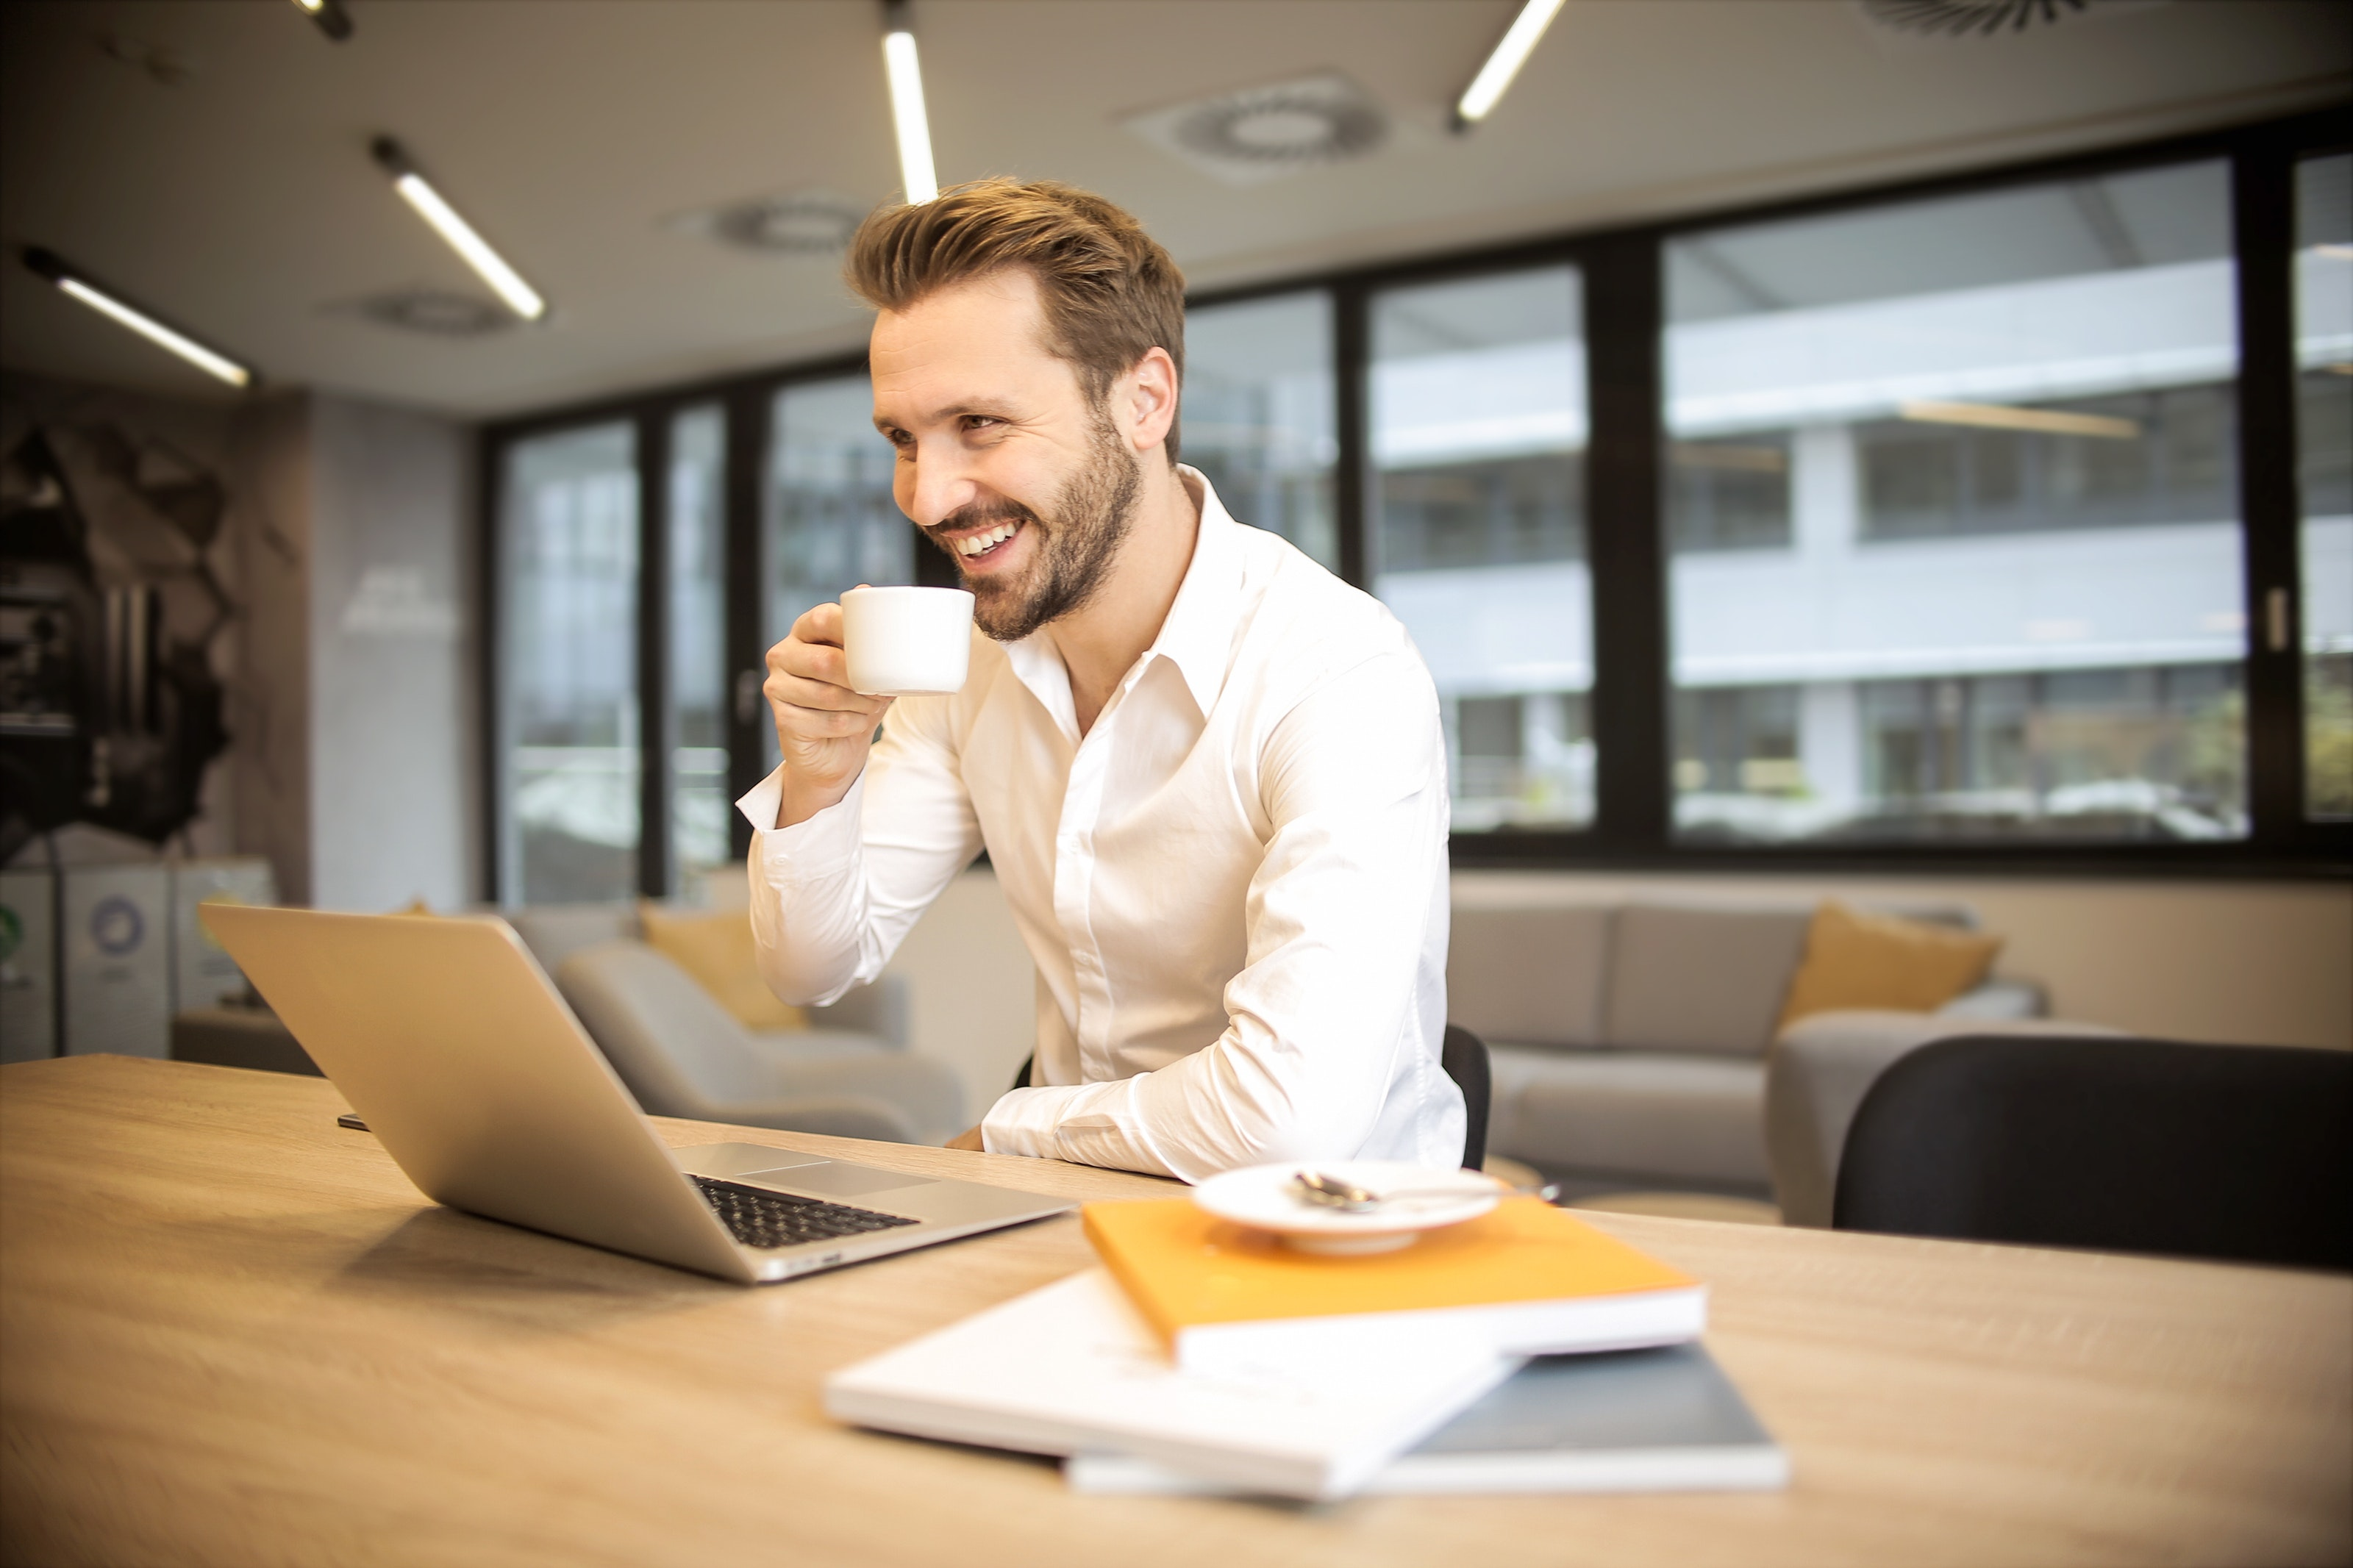 A man smiling and drinking coffee as he works on a laptop.